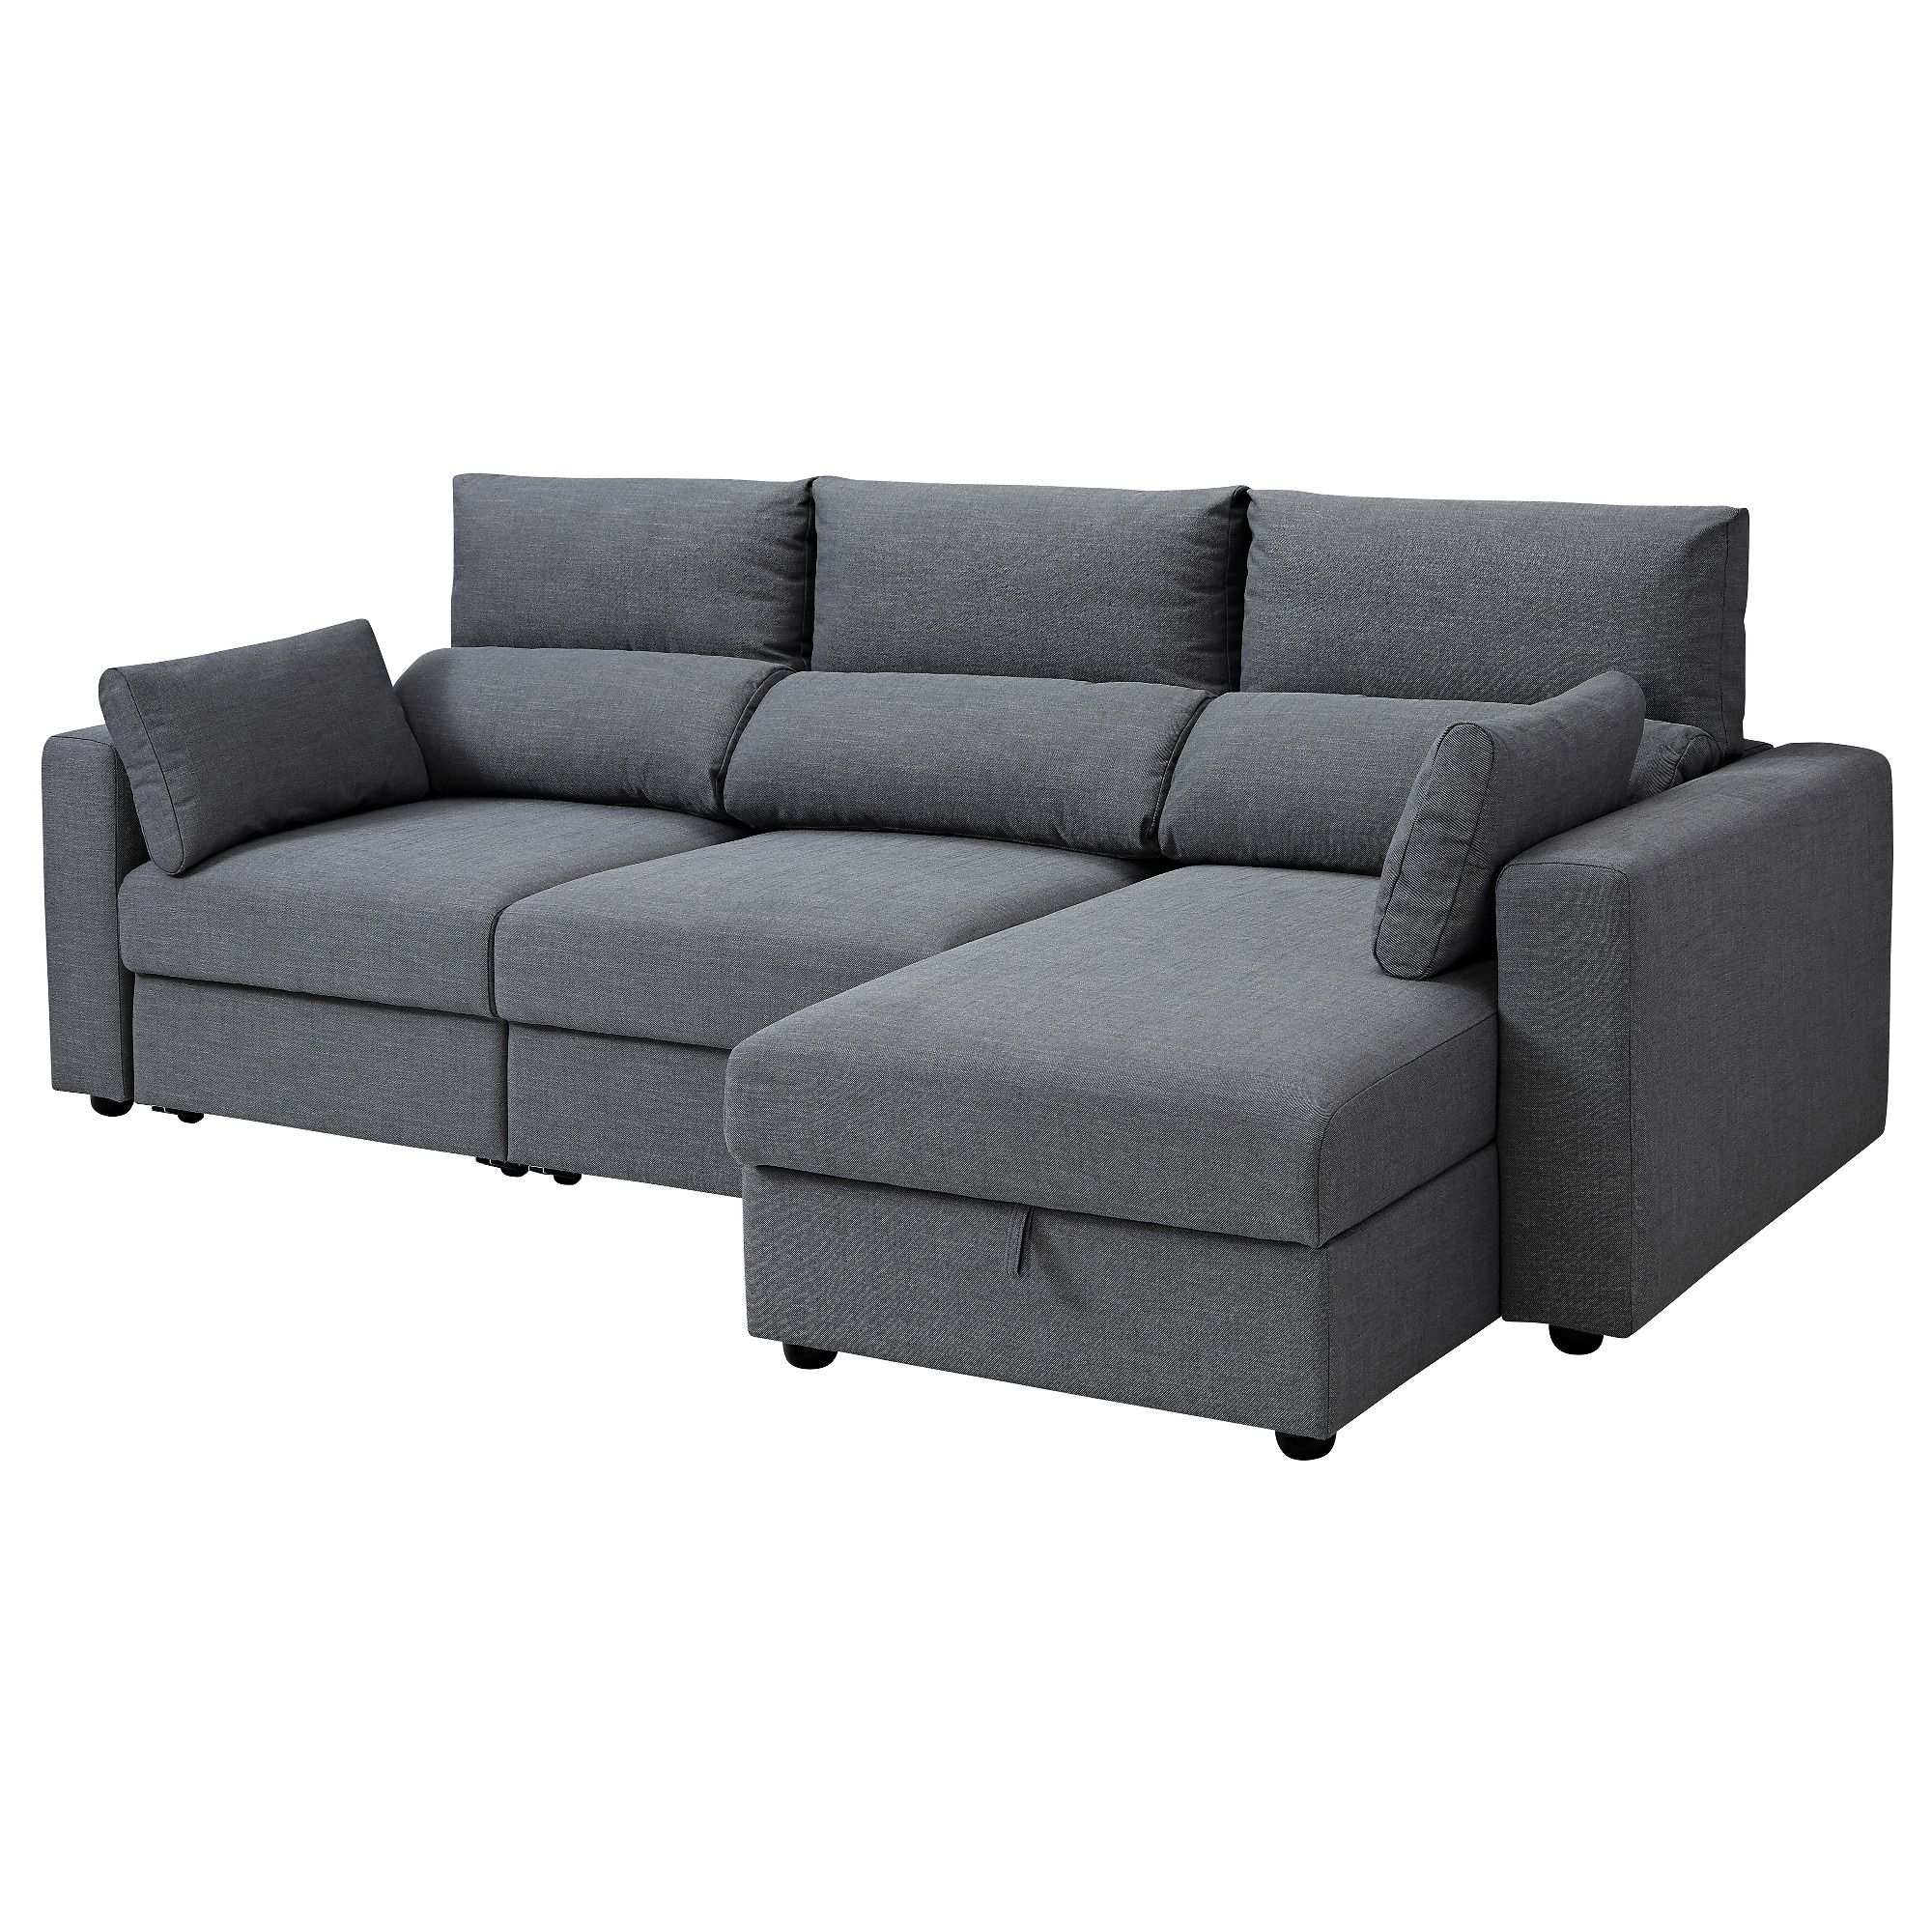 Furniture And Decoration Better Homes Better Lives Ikea Sofa Sofa Bed With Chaise Long Sofa